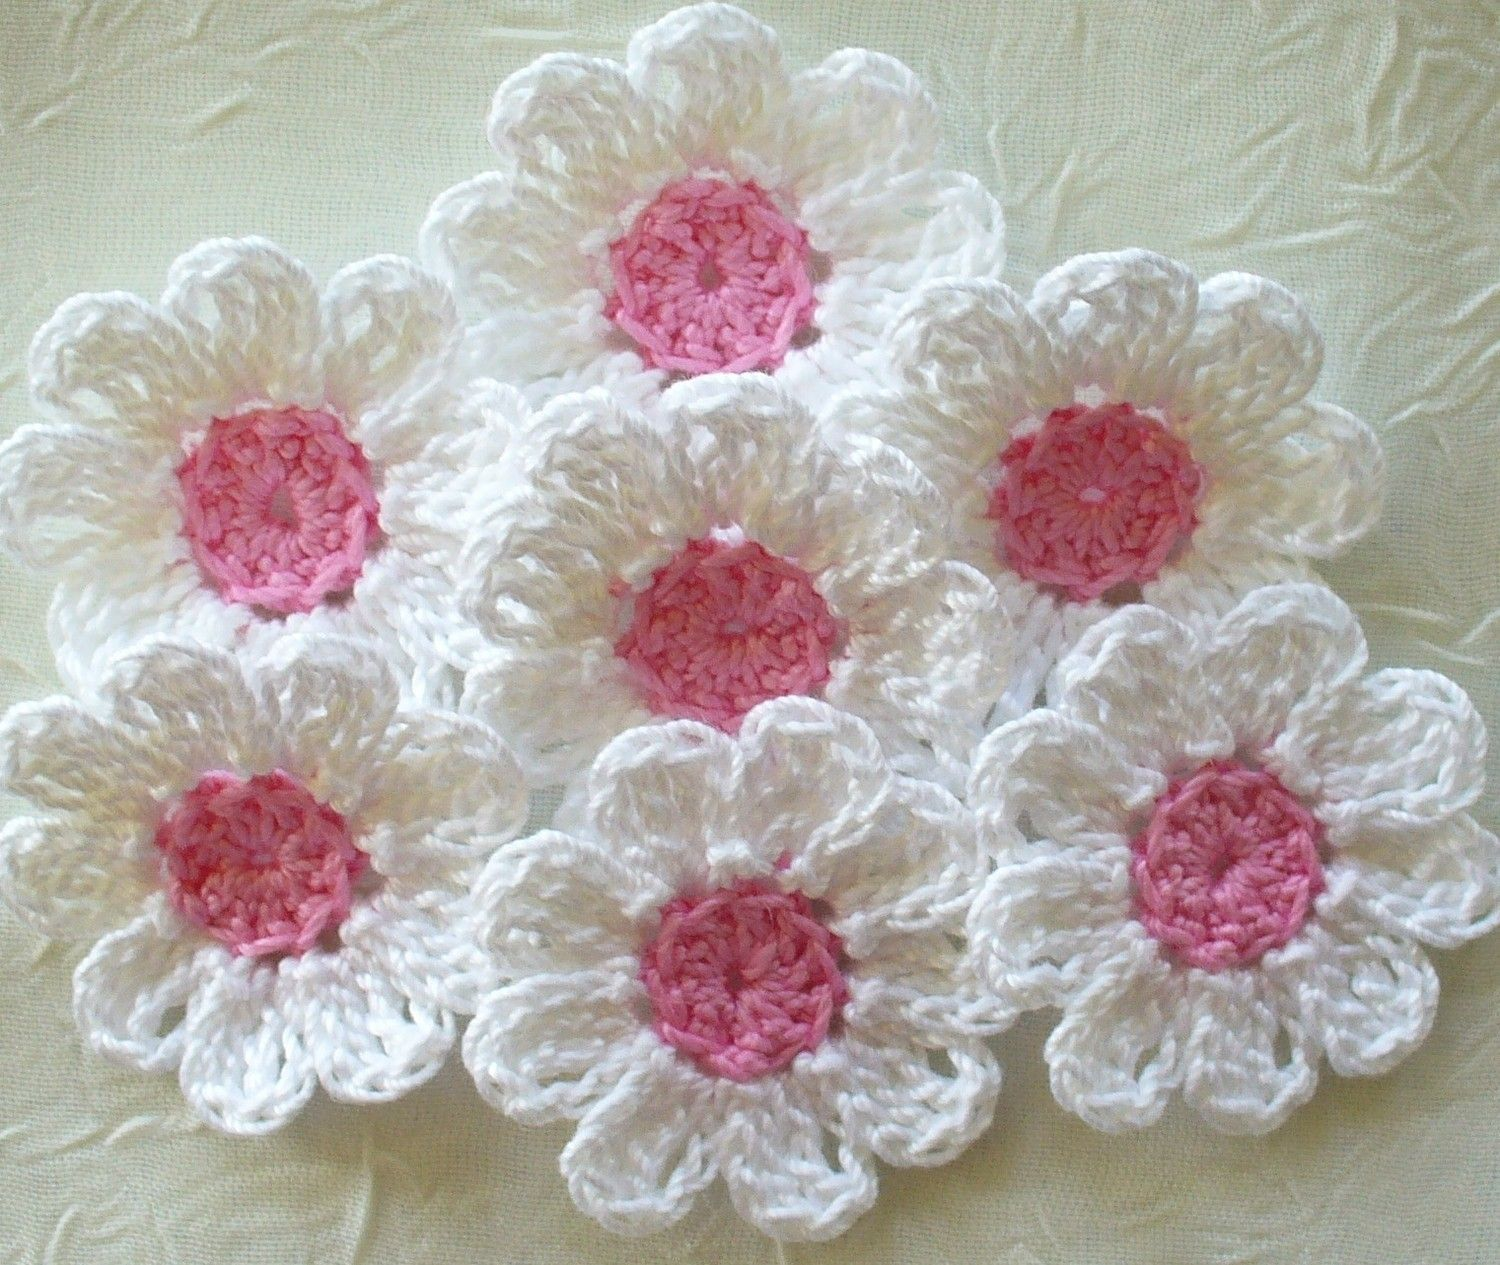 16 Small White Crochet Flowers Appliques Daisies Pink Centers